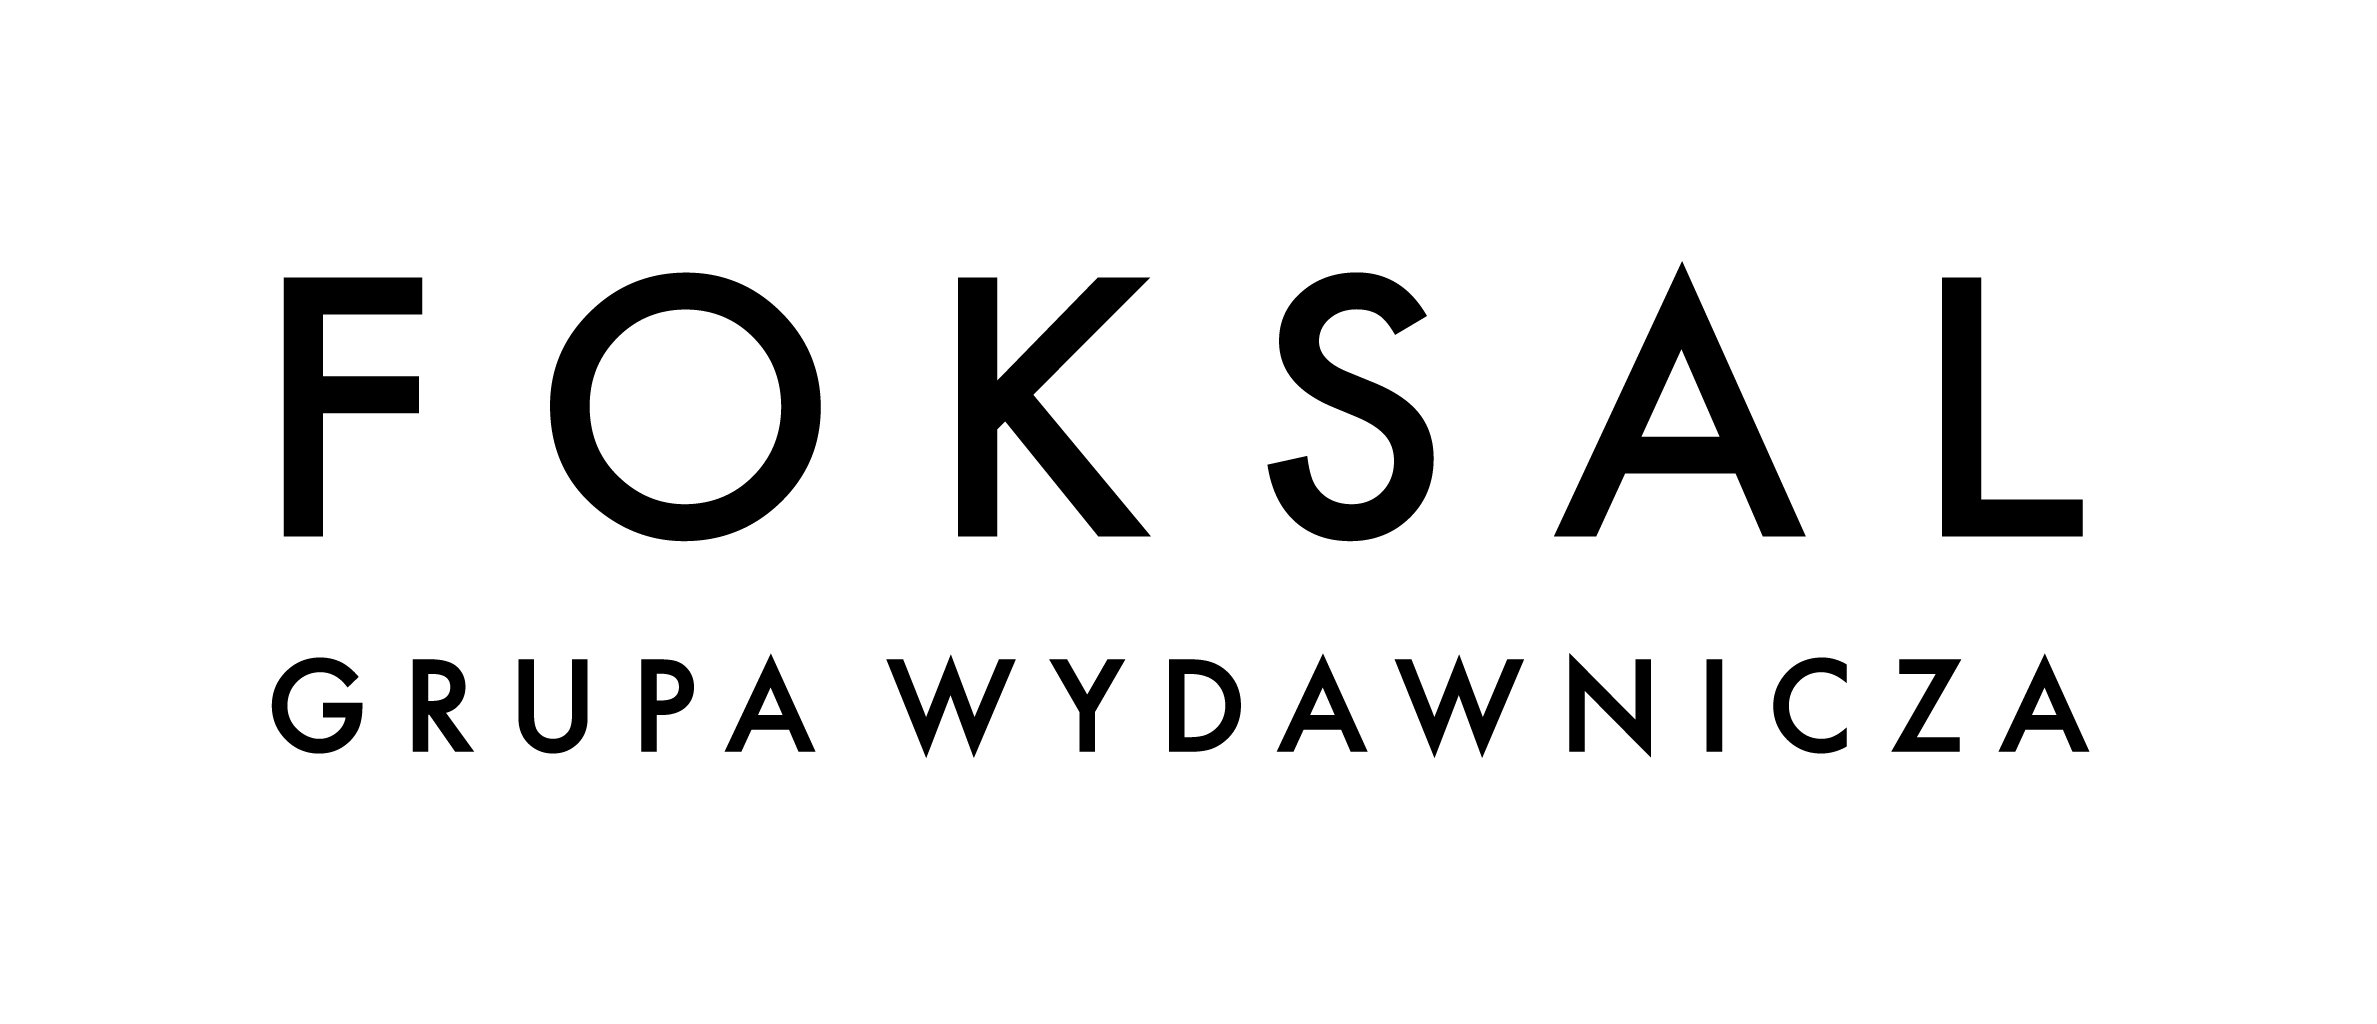 This is the company logo/link of our polish partner Foksal